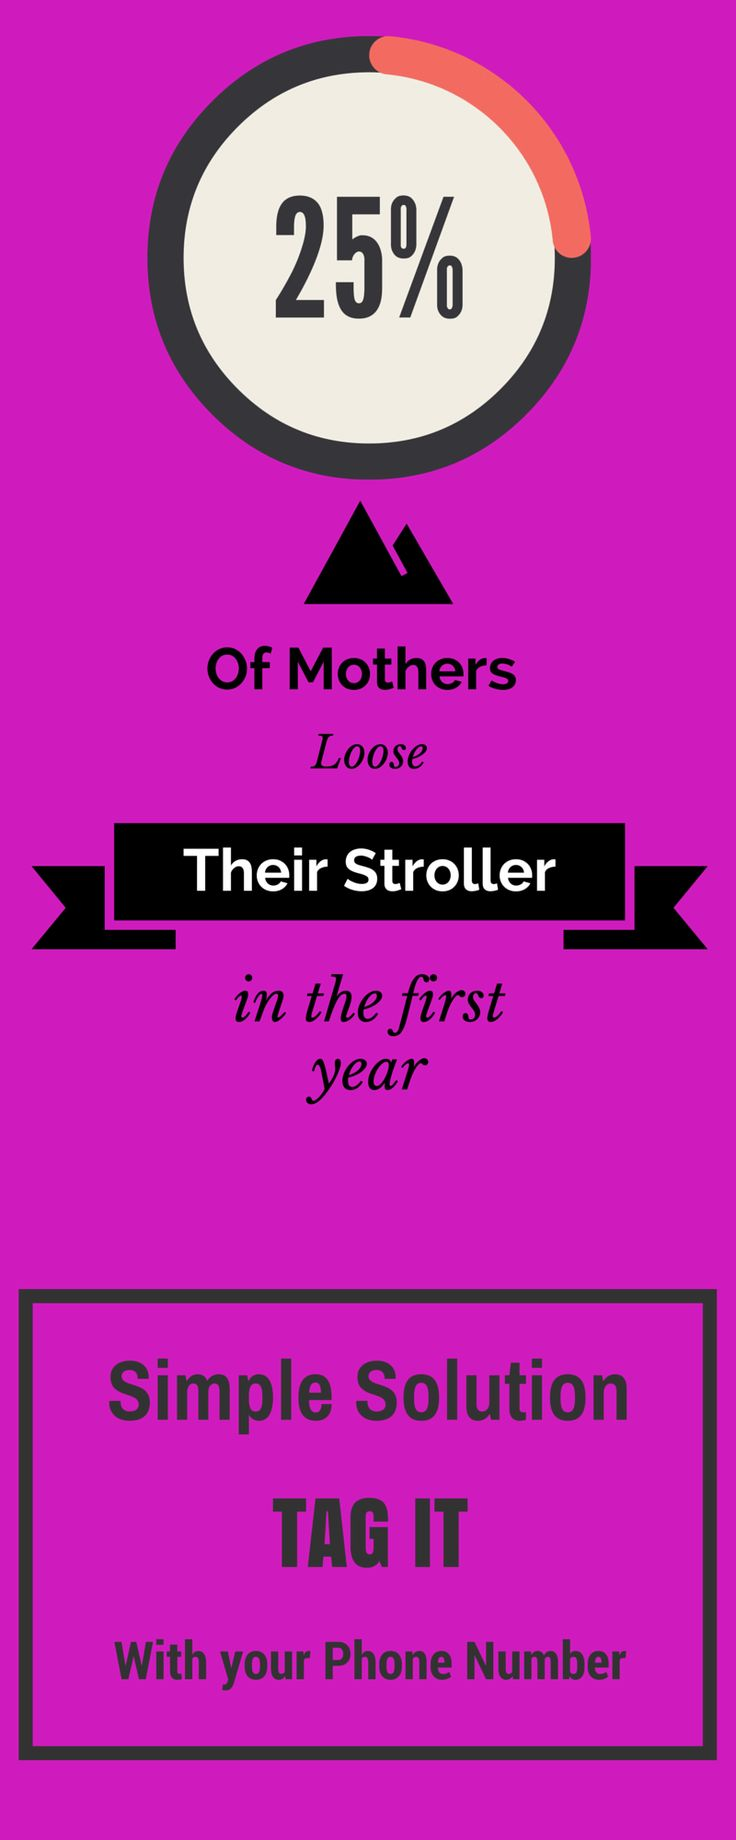 25% of Mothers loose their stroller in the first year. Its not always their fault, they are new to trying to juggle shopping, playgroup etc and just forget to pick it up. A couple of my friends have lost their strollers in this way. So why not just tag it as luggage and most people who find it will give you a call.